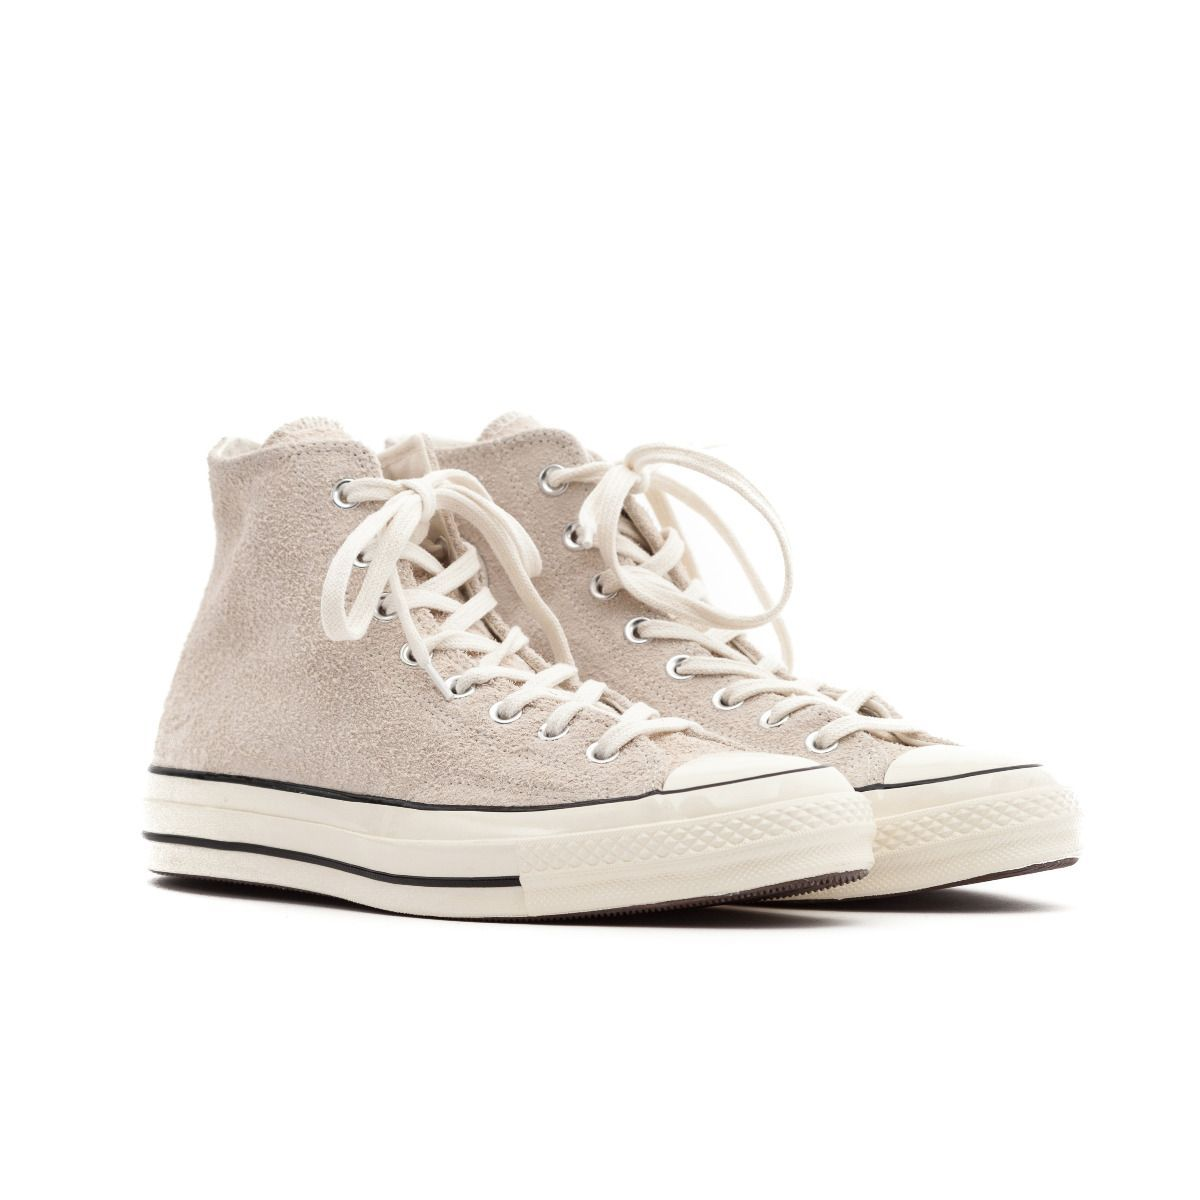 converse all star 70 vintage